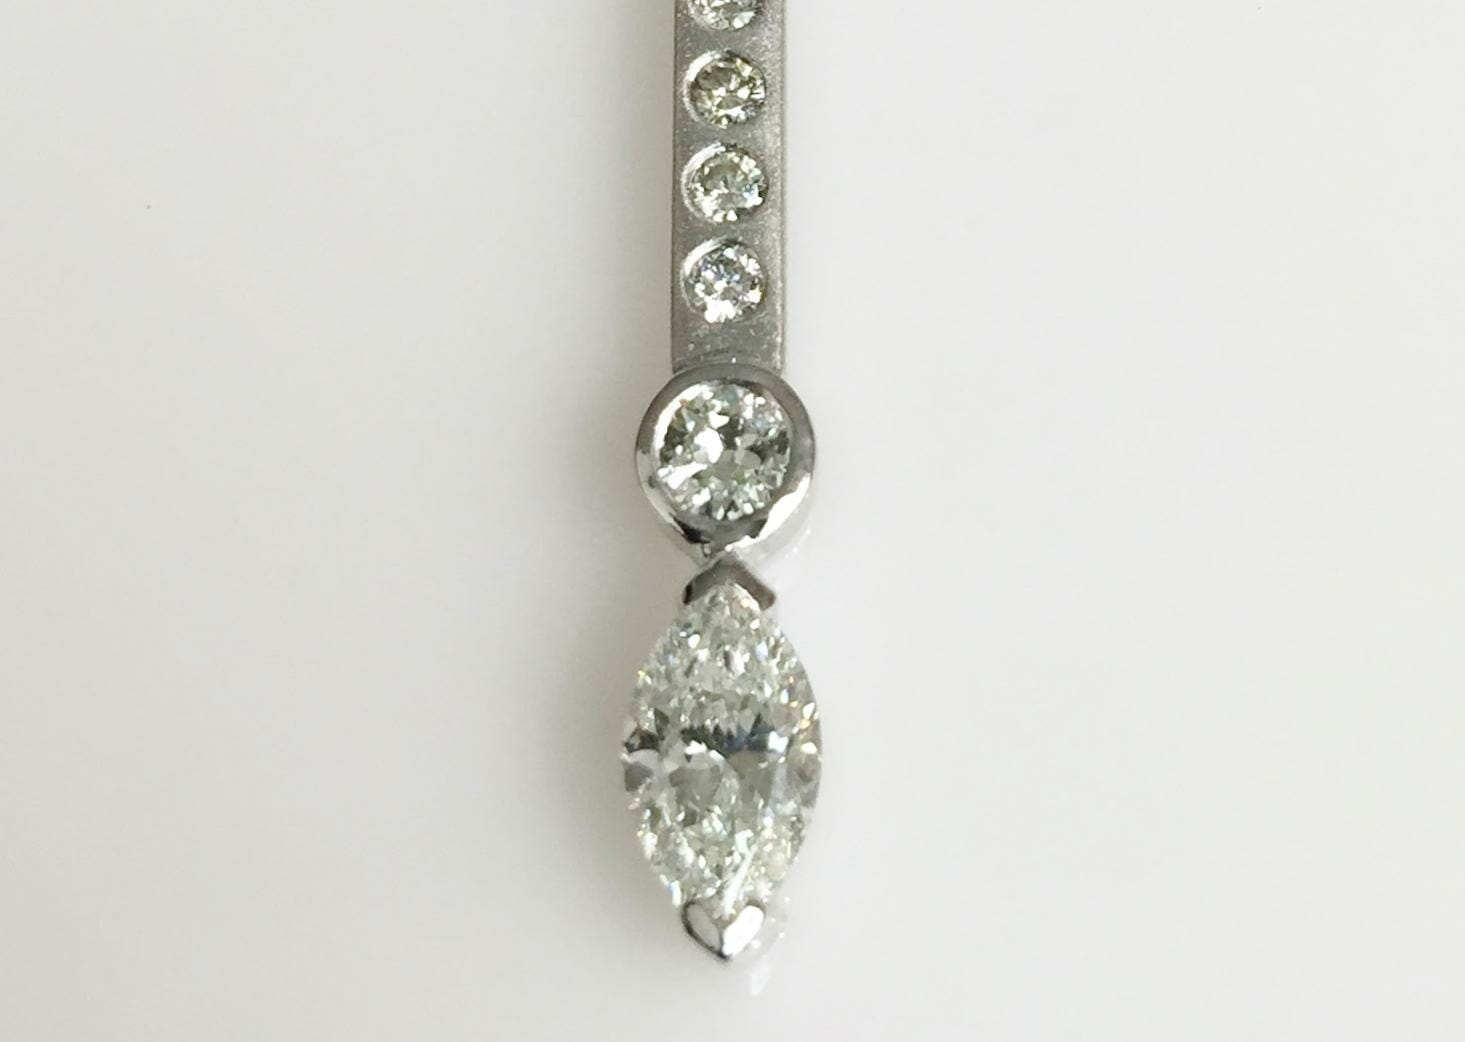 Marquise Cut Diamond Necklace Keezing Kreations Boston